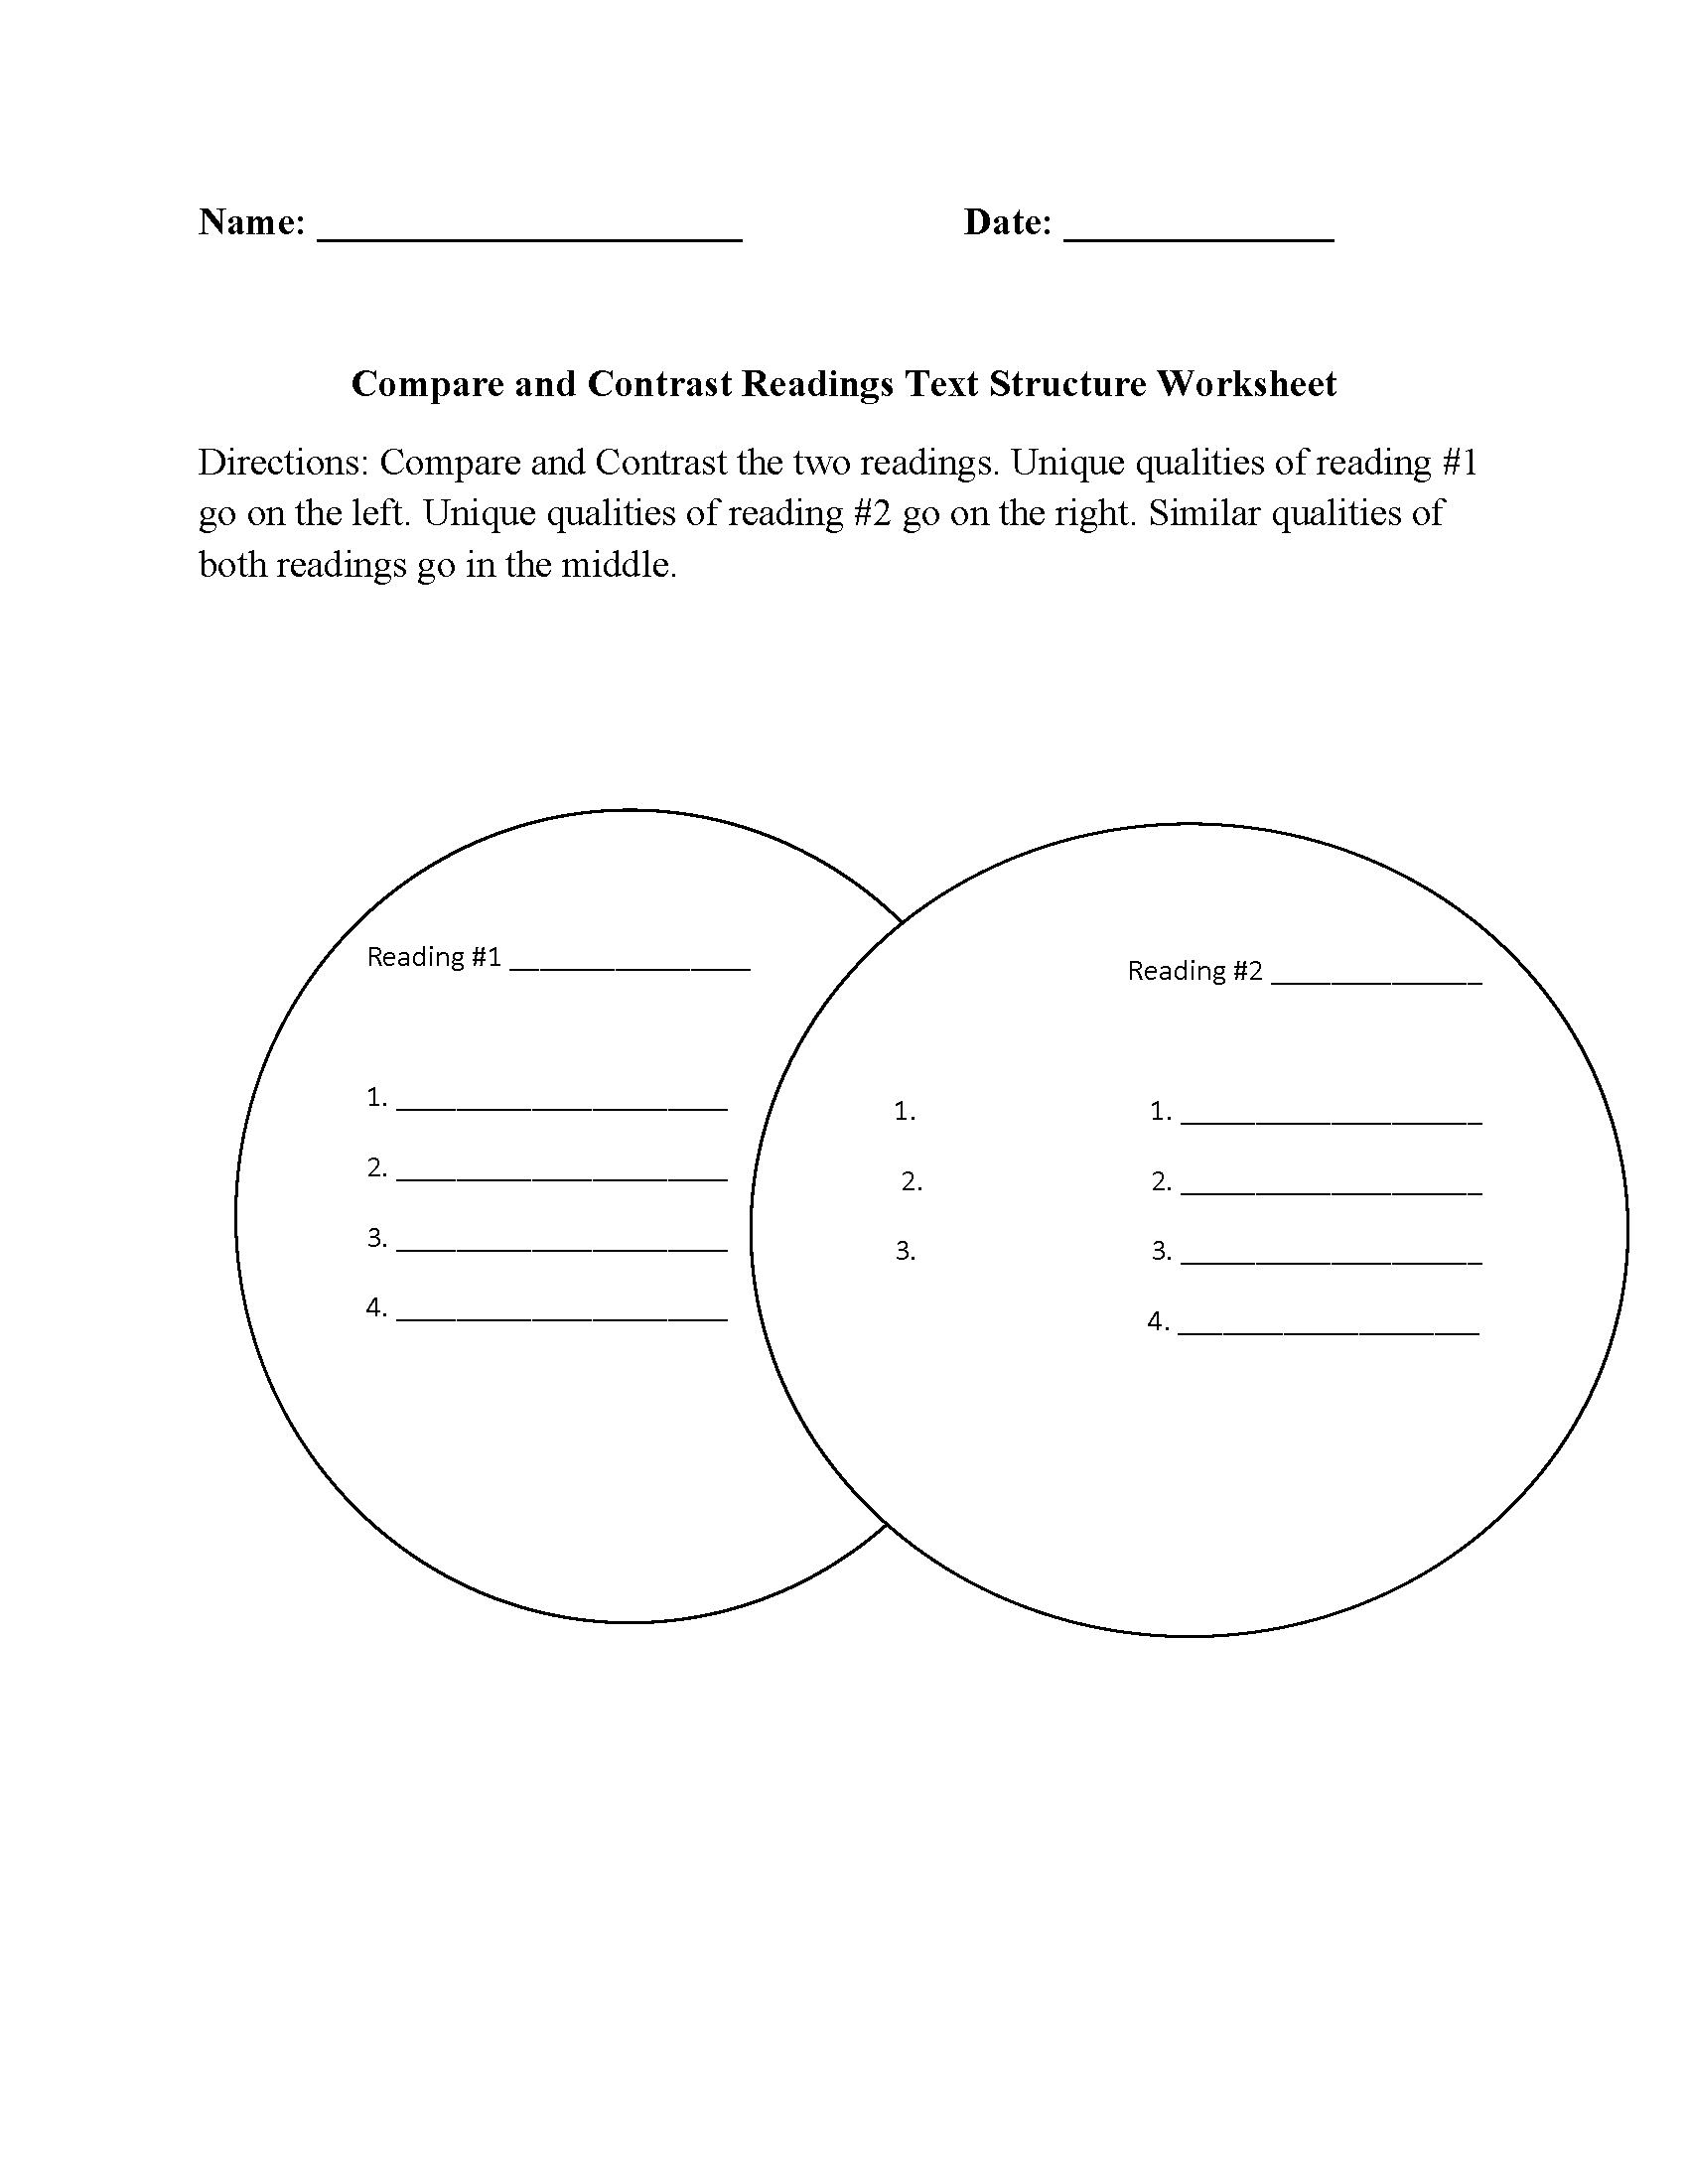 Text Structure Worksheets Compare And Contrast Readings Text